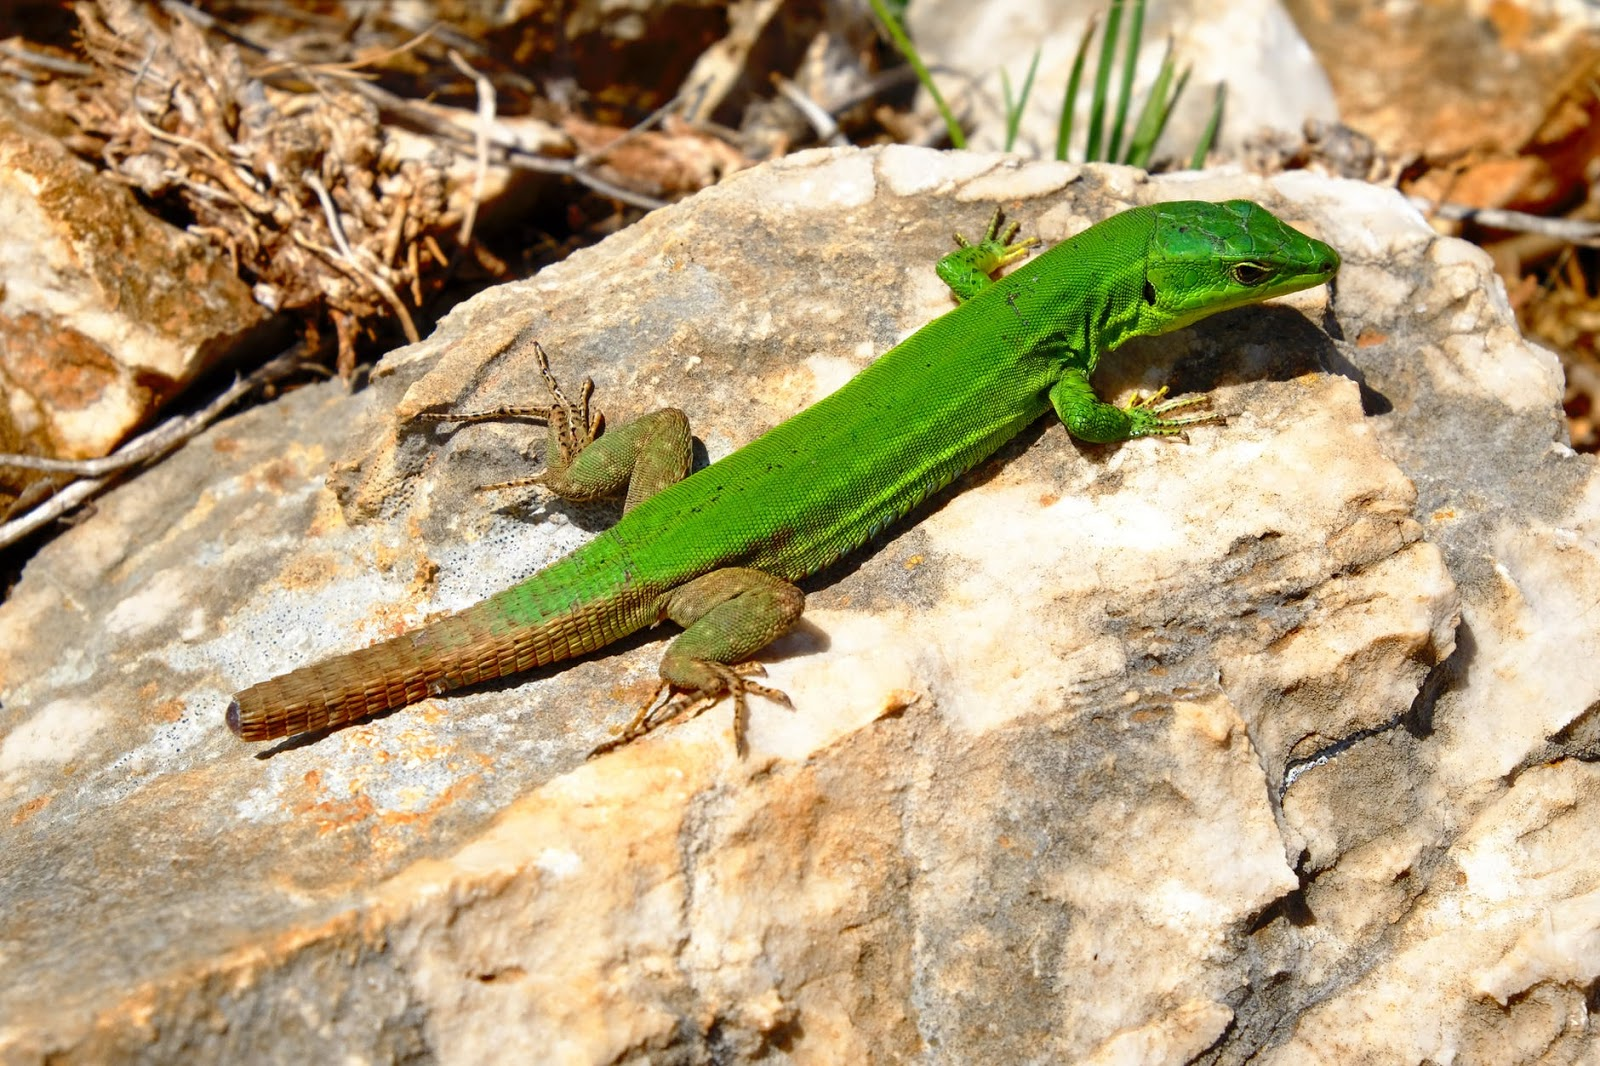 bright green lizard on rock